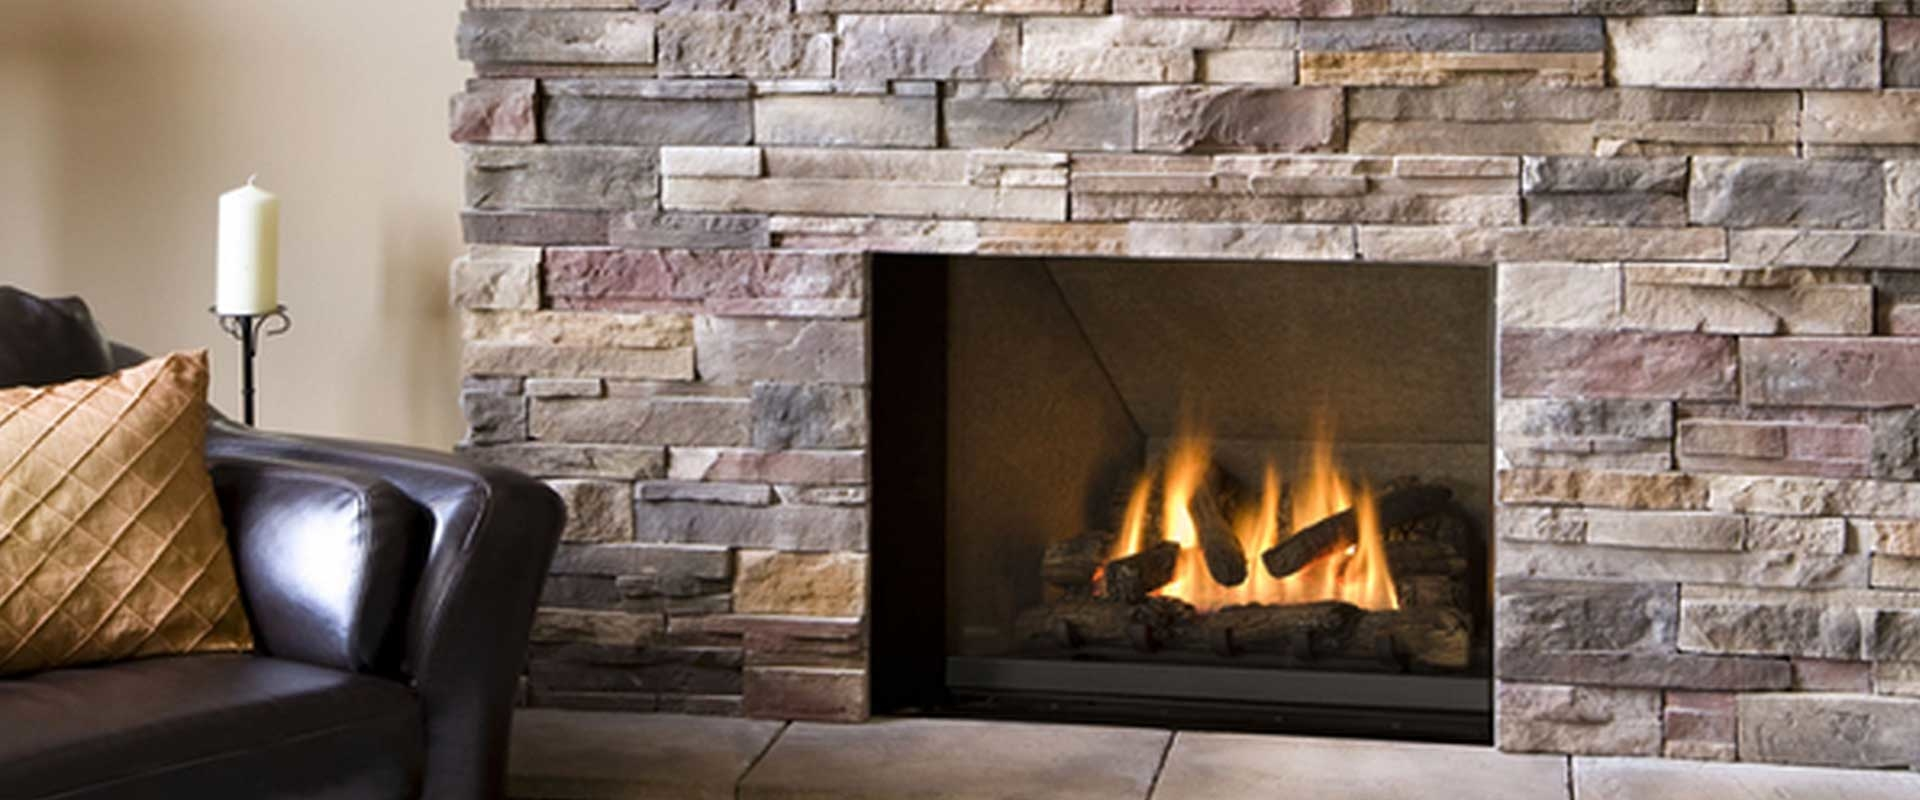 Overhead Door and Fireplace Coupons near me in Waterford